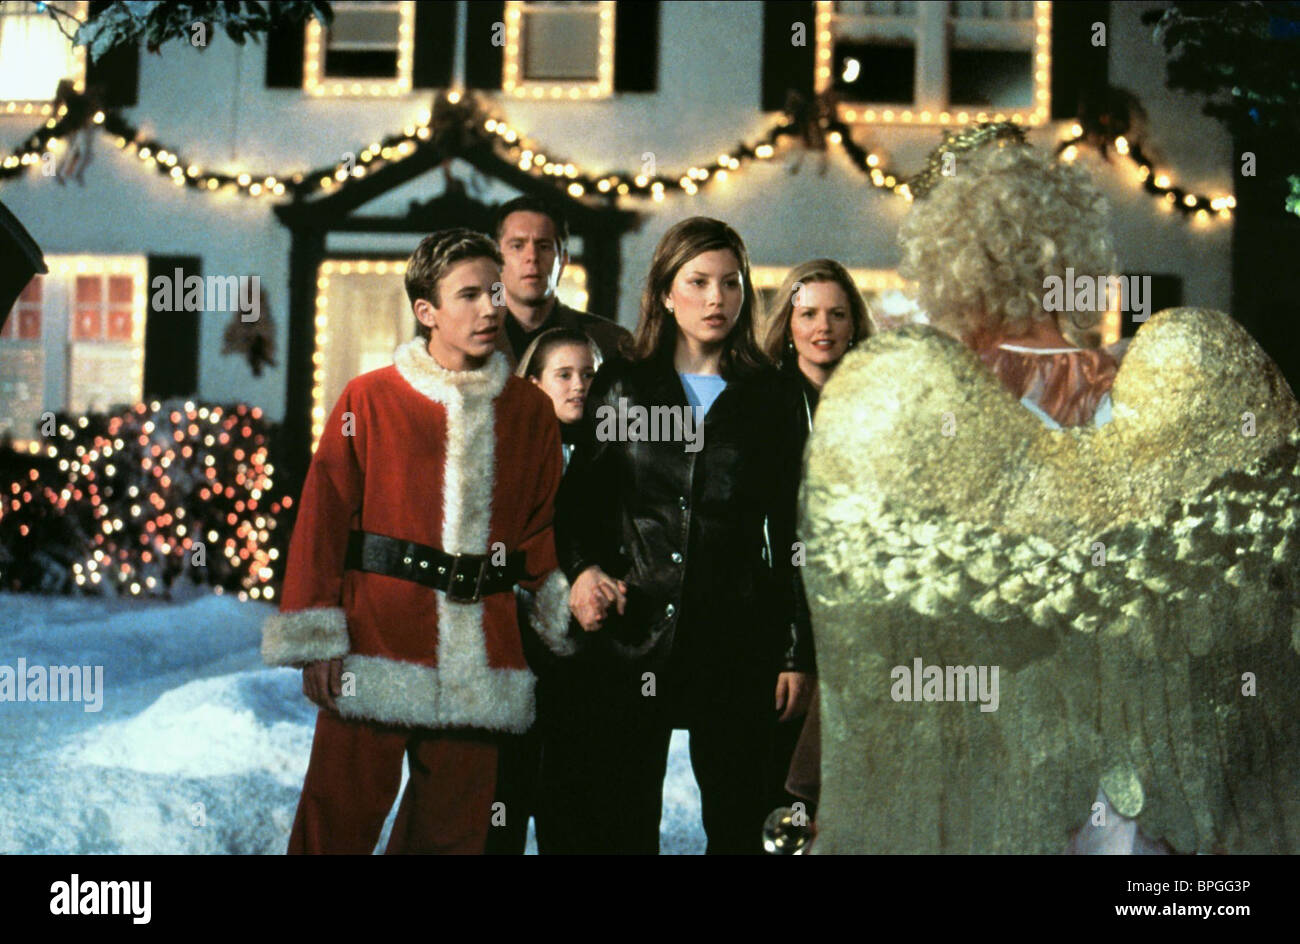 Ill Be Home For Christmas 1998.Jonathan Taylor Thomas Jessica Biel I Ll Be Home For